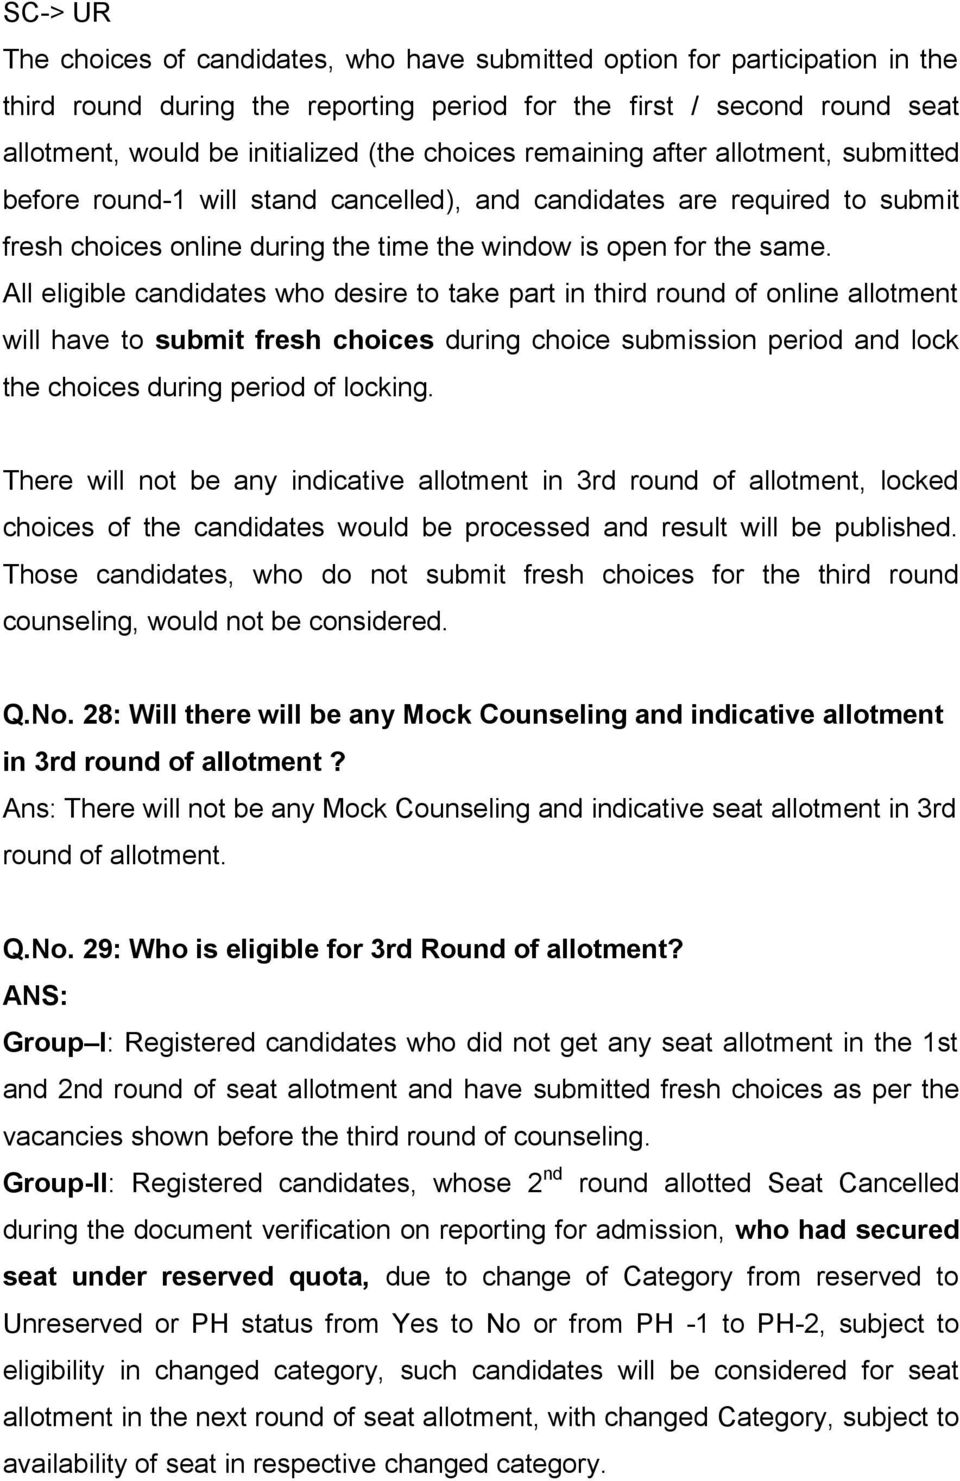 All eligible candidates who desire to take part in third round of online allotment will have to submit fresh choices during choice submission period and lock the choices during period of locking.